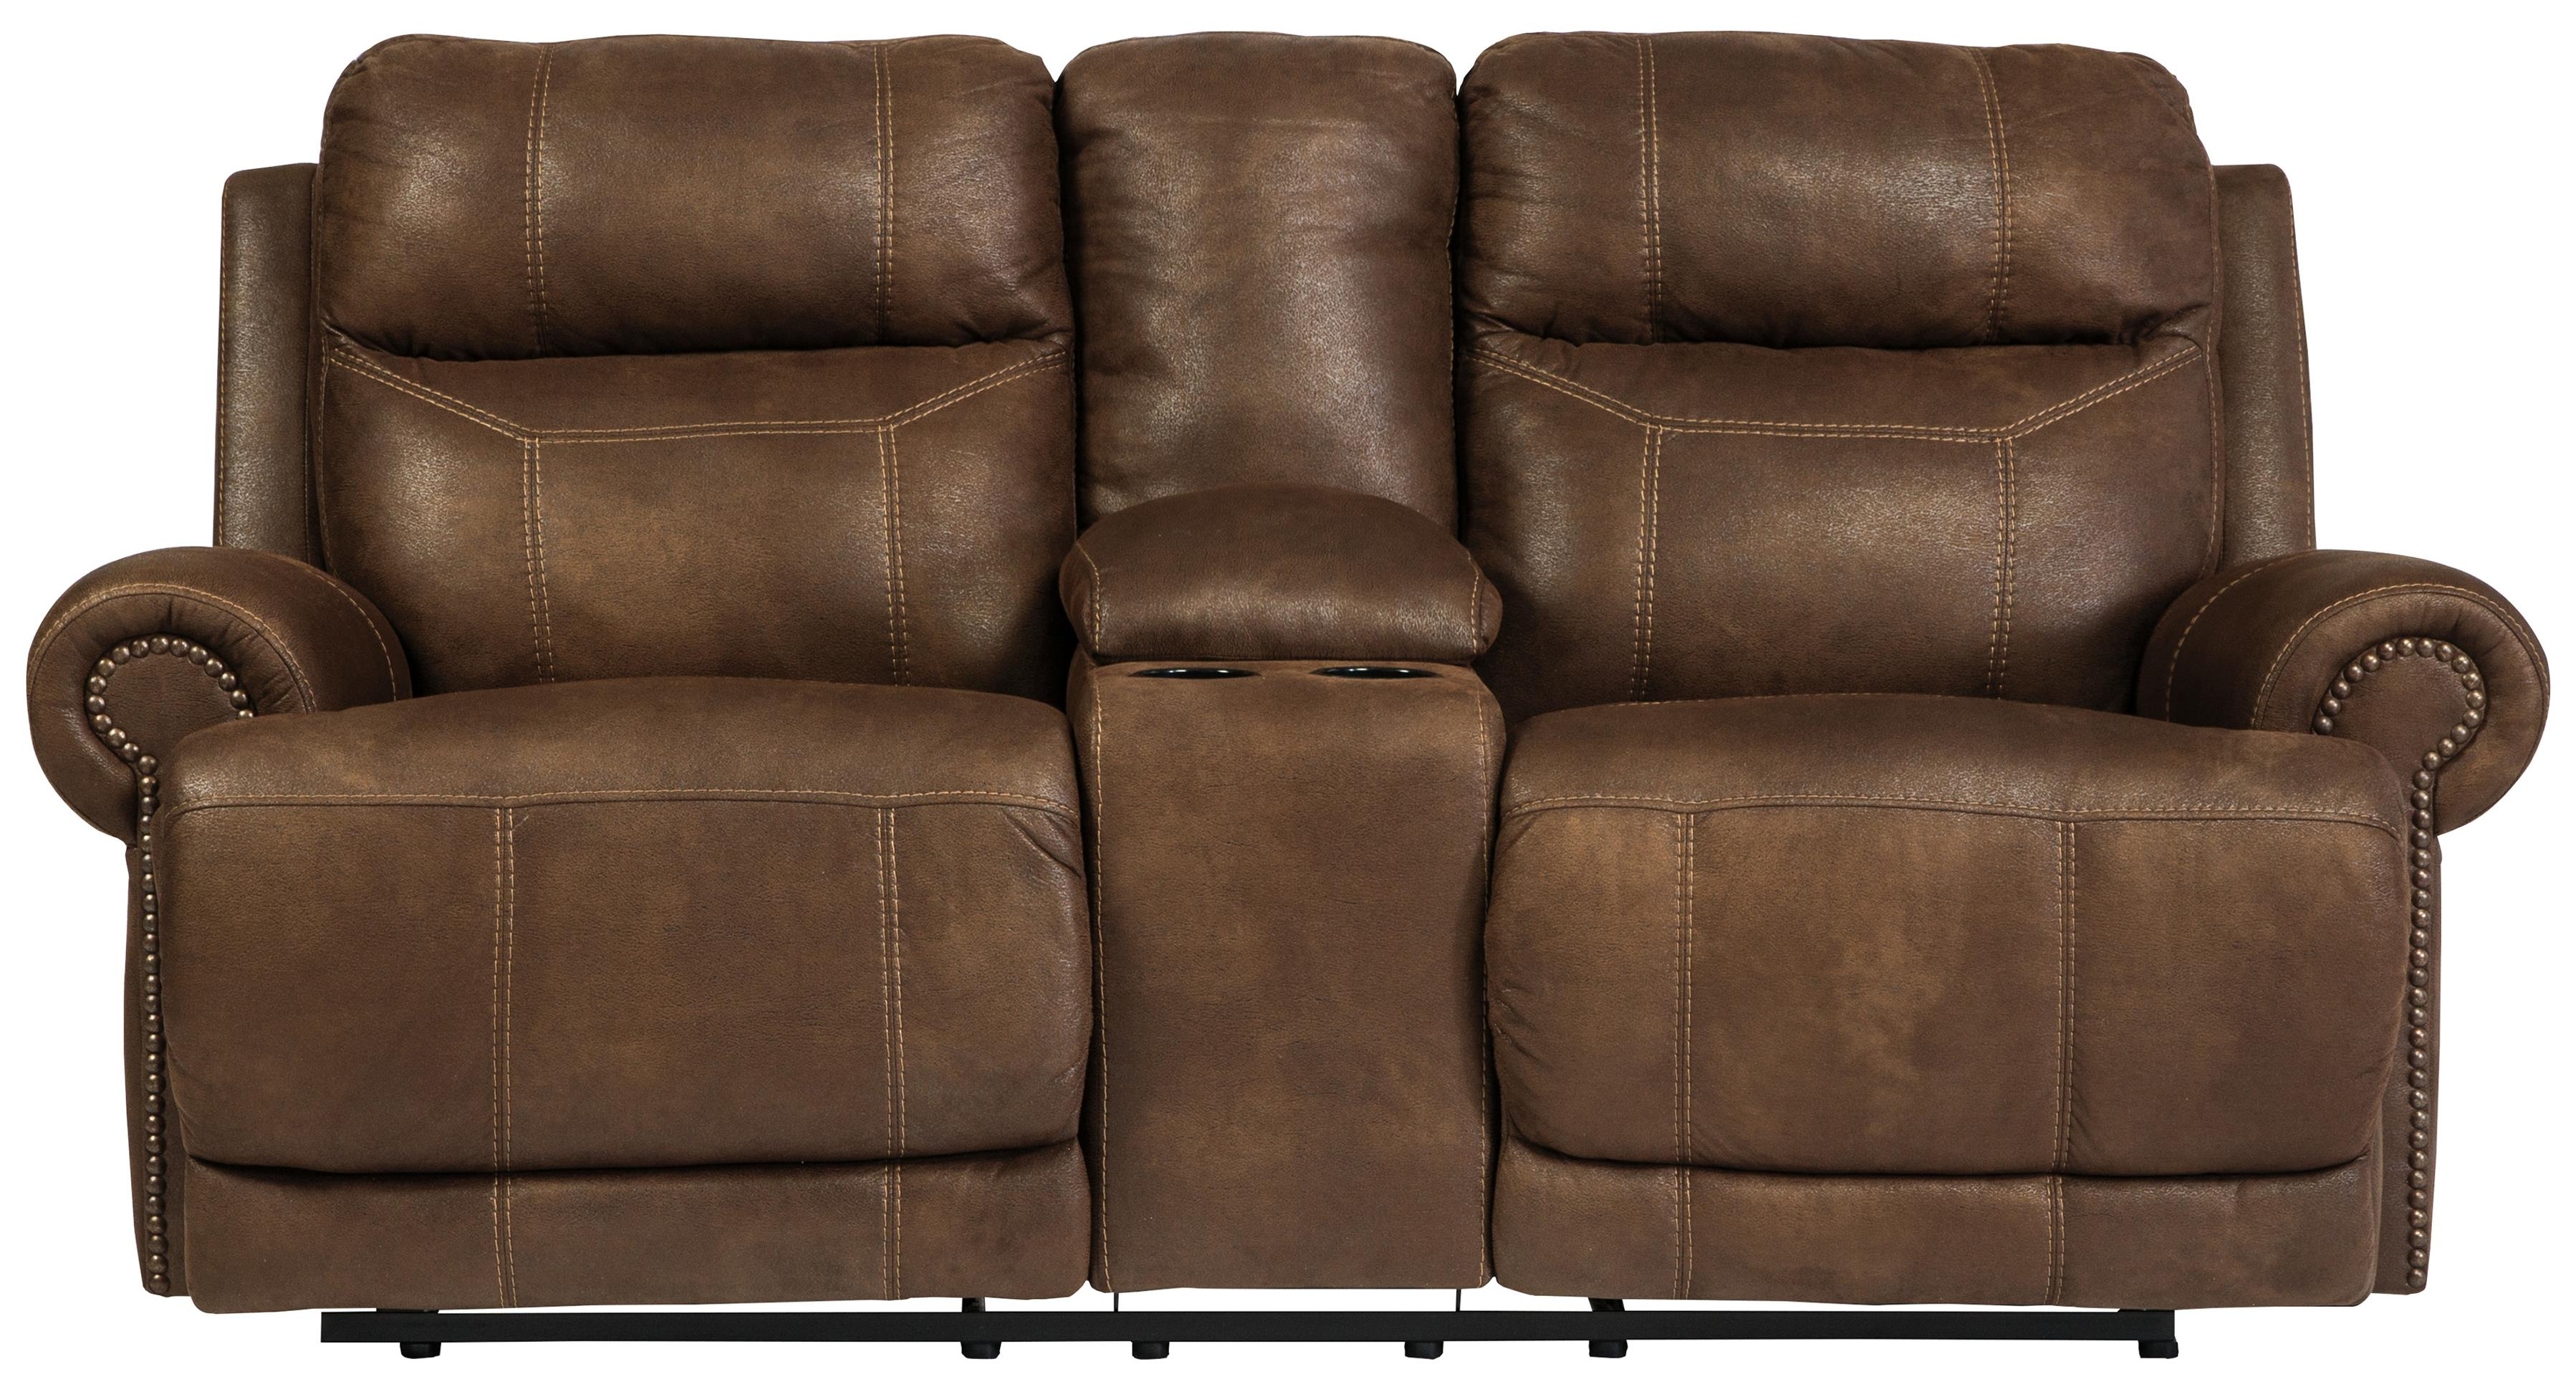 Signature Design by Ashley Austere - Brown Double Reclining Loveseat w/ Console & Power - Item Number: 3840096